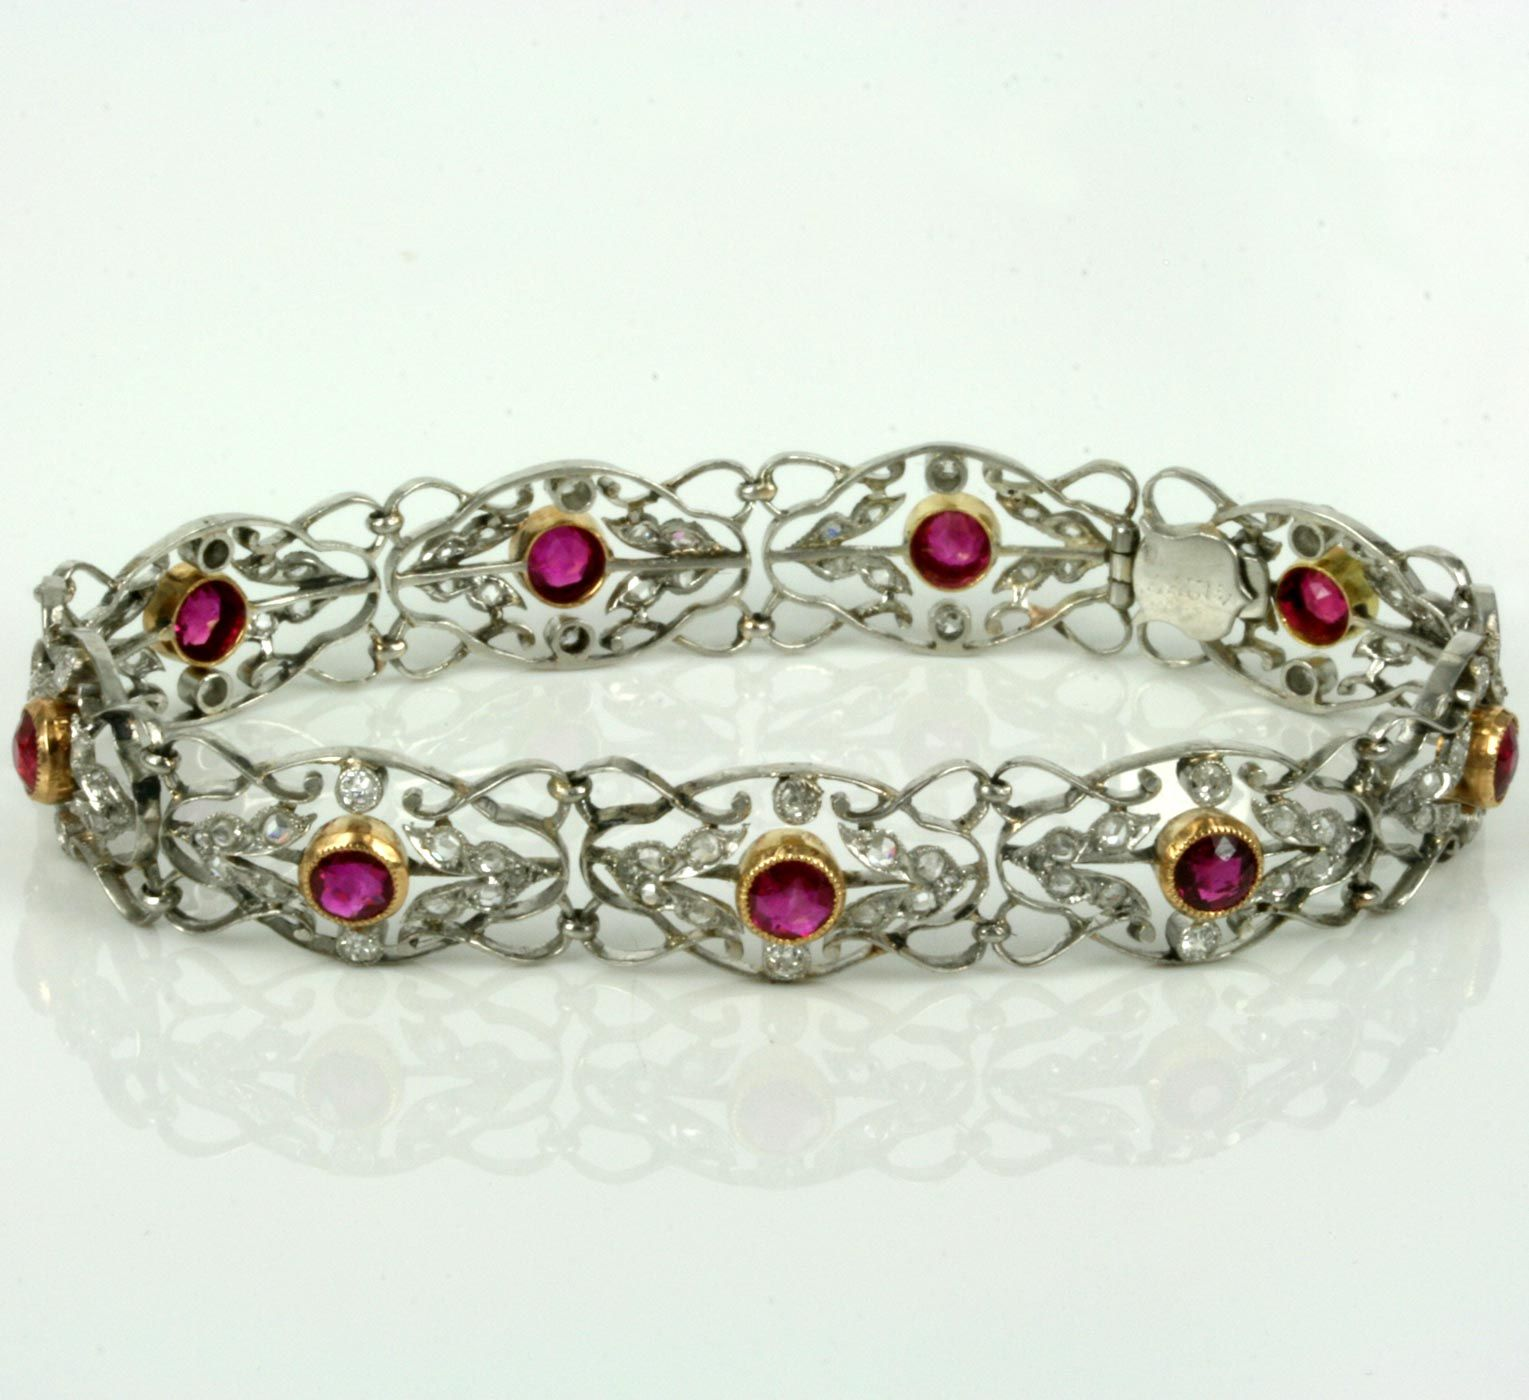 bracelet diamond purple sapphire kashmir ruby jewelry untreated and